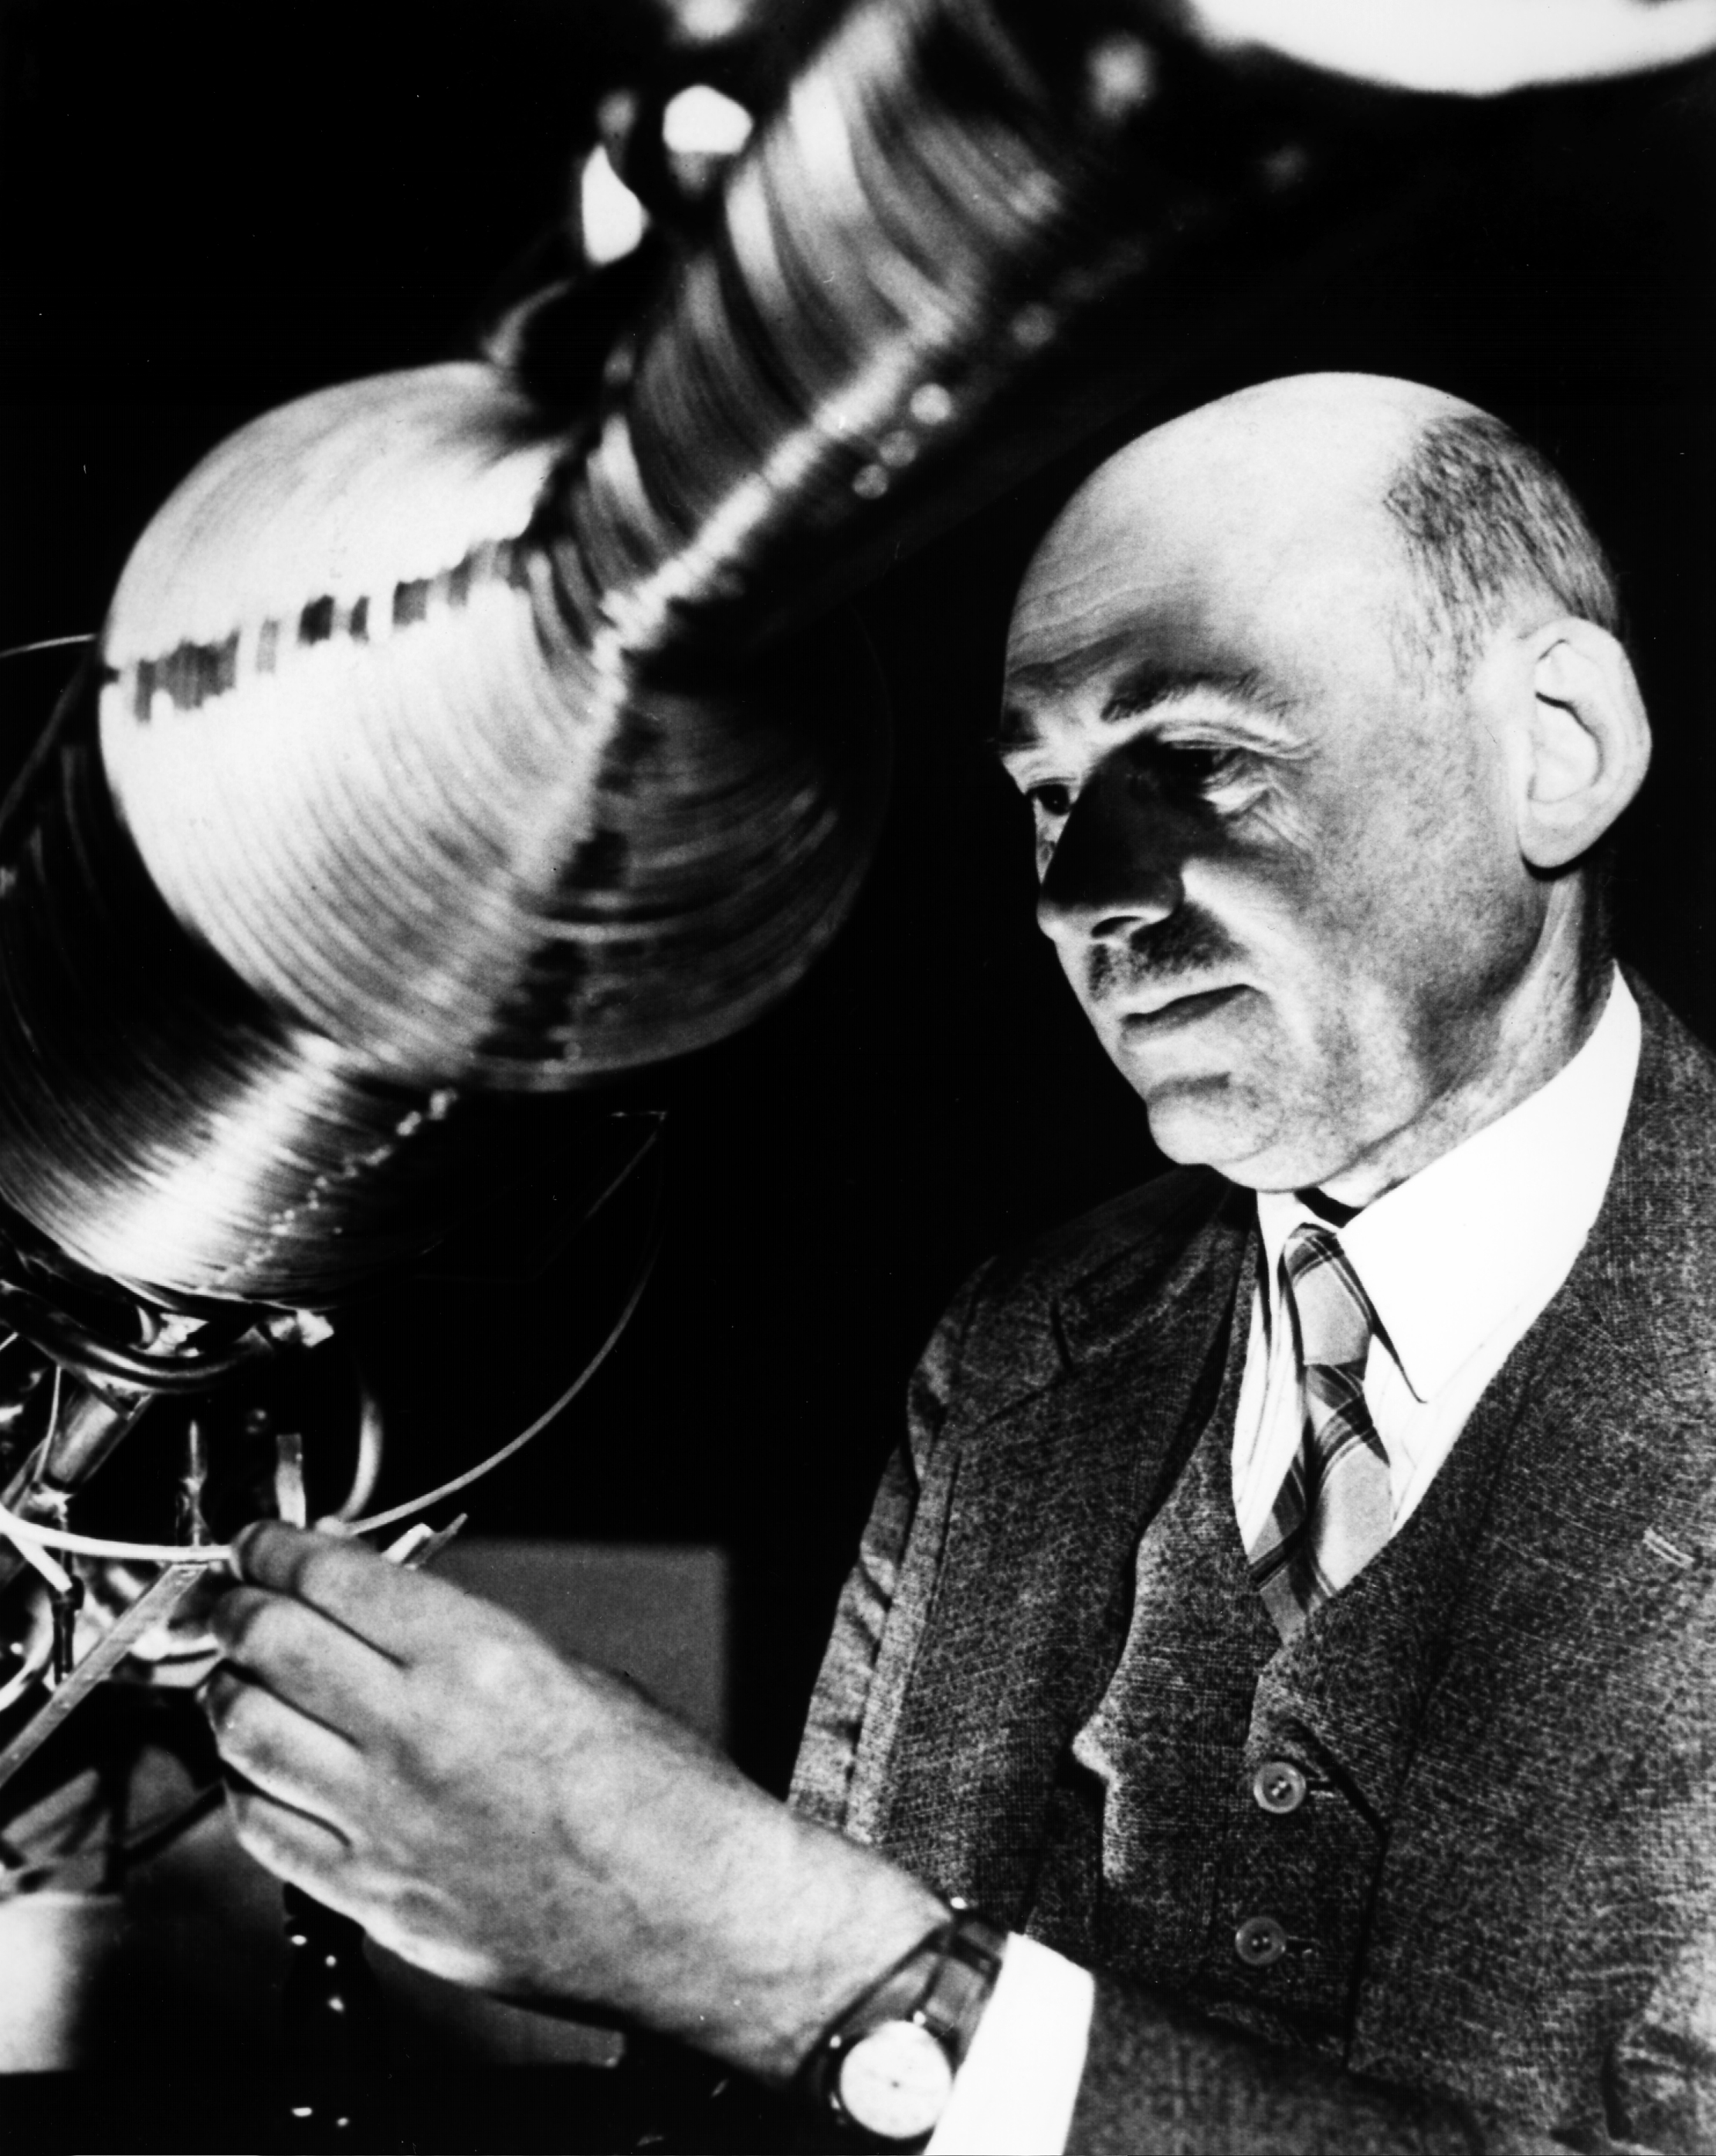 Robert goddard images and photo galleries fameimages com